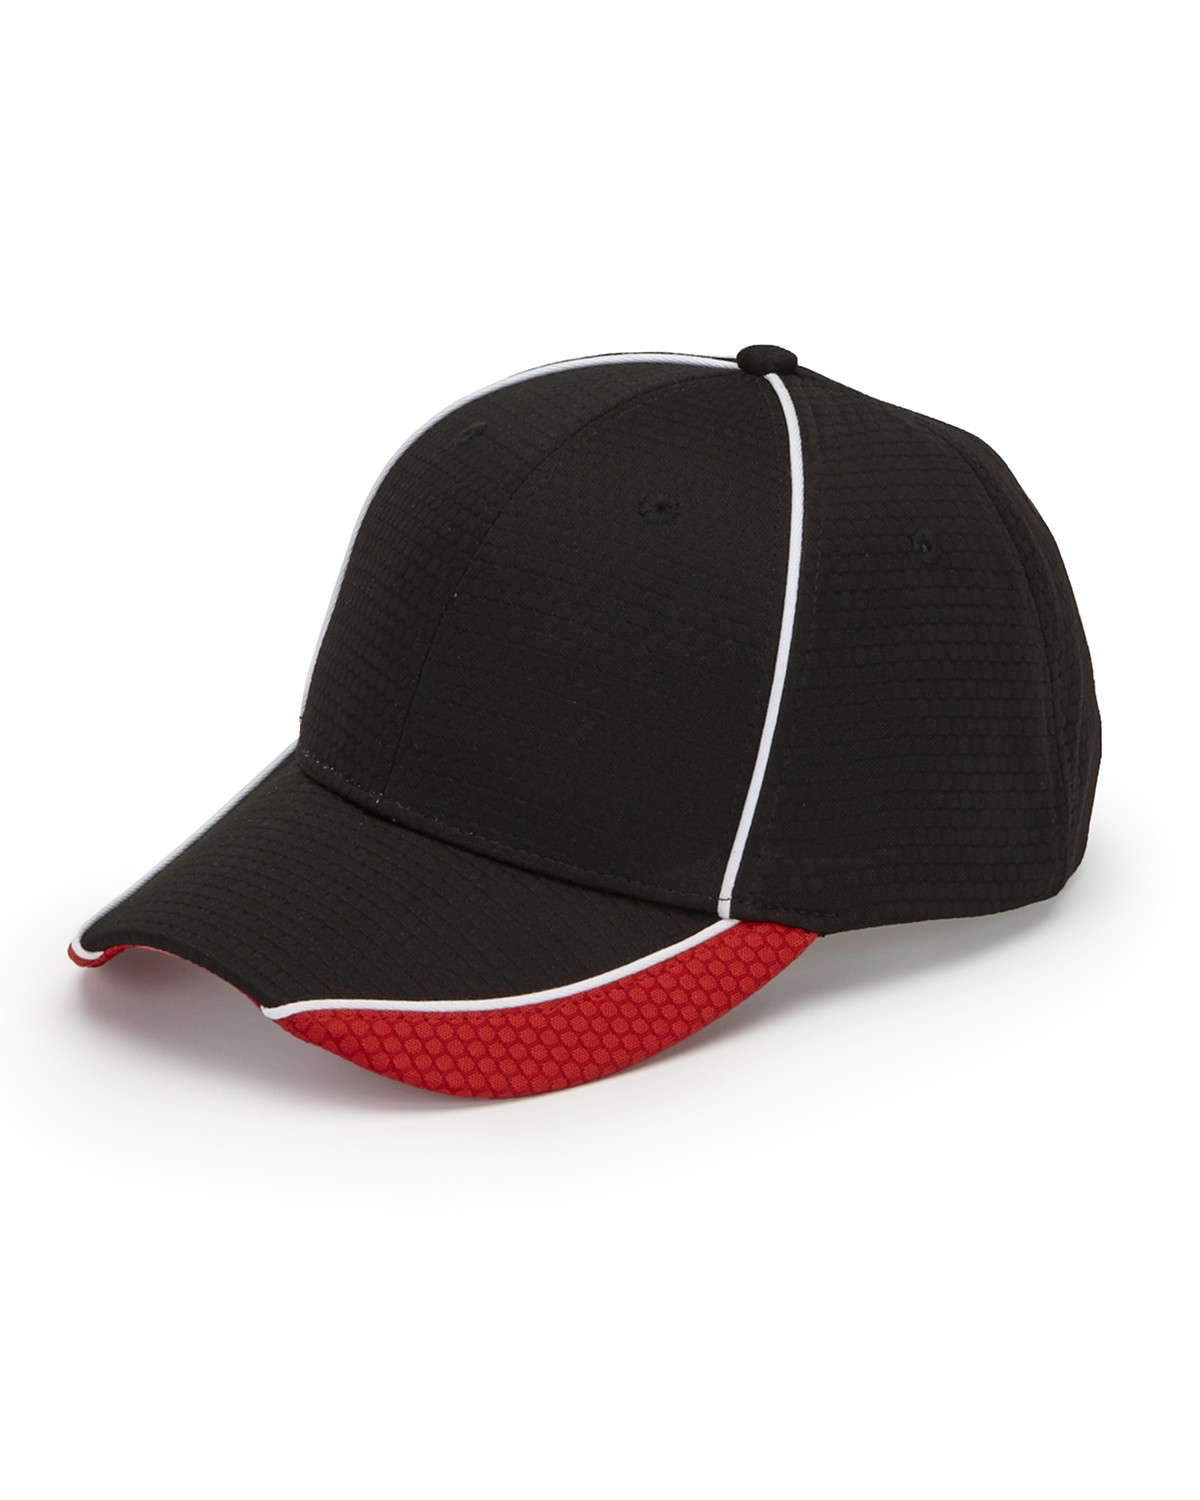 DP102 Adams BLACK/RED/WHT